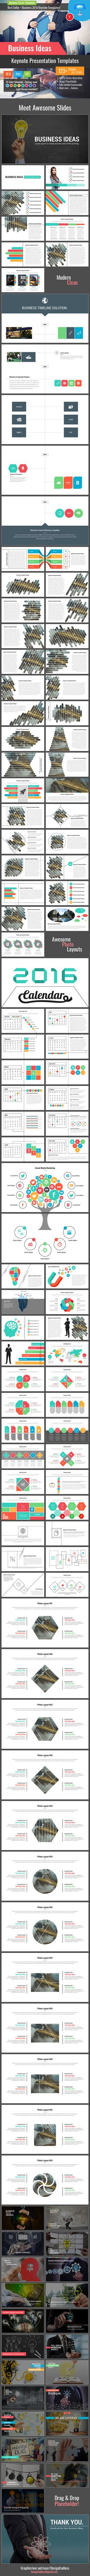 Business Ideas - New Trending Template. Download here: http://graphicriver.net/item/business-ideas-new-trending-template/15679316?ref=ksioks